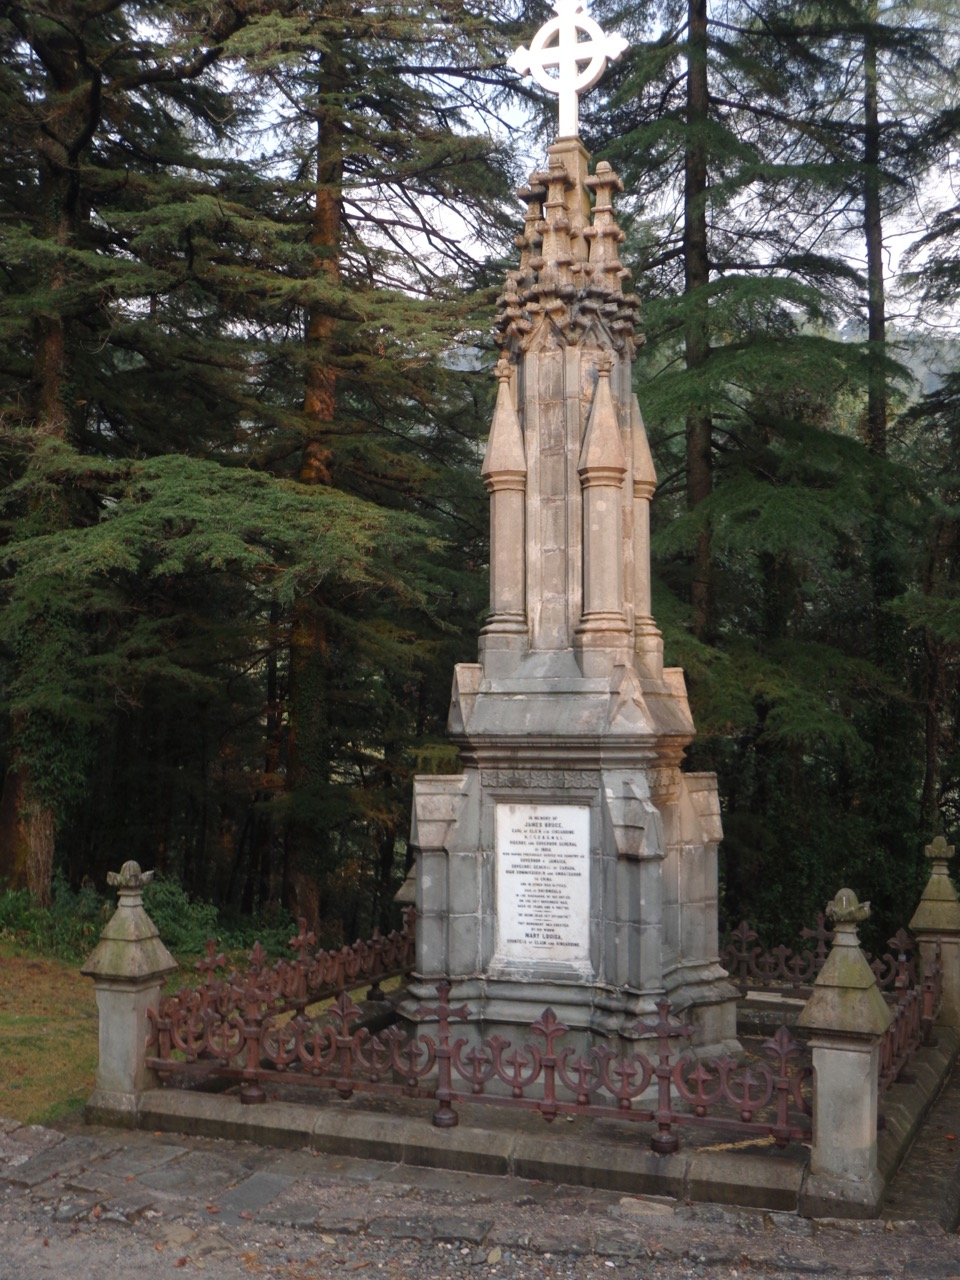 The memorial of James Bruce